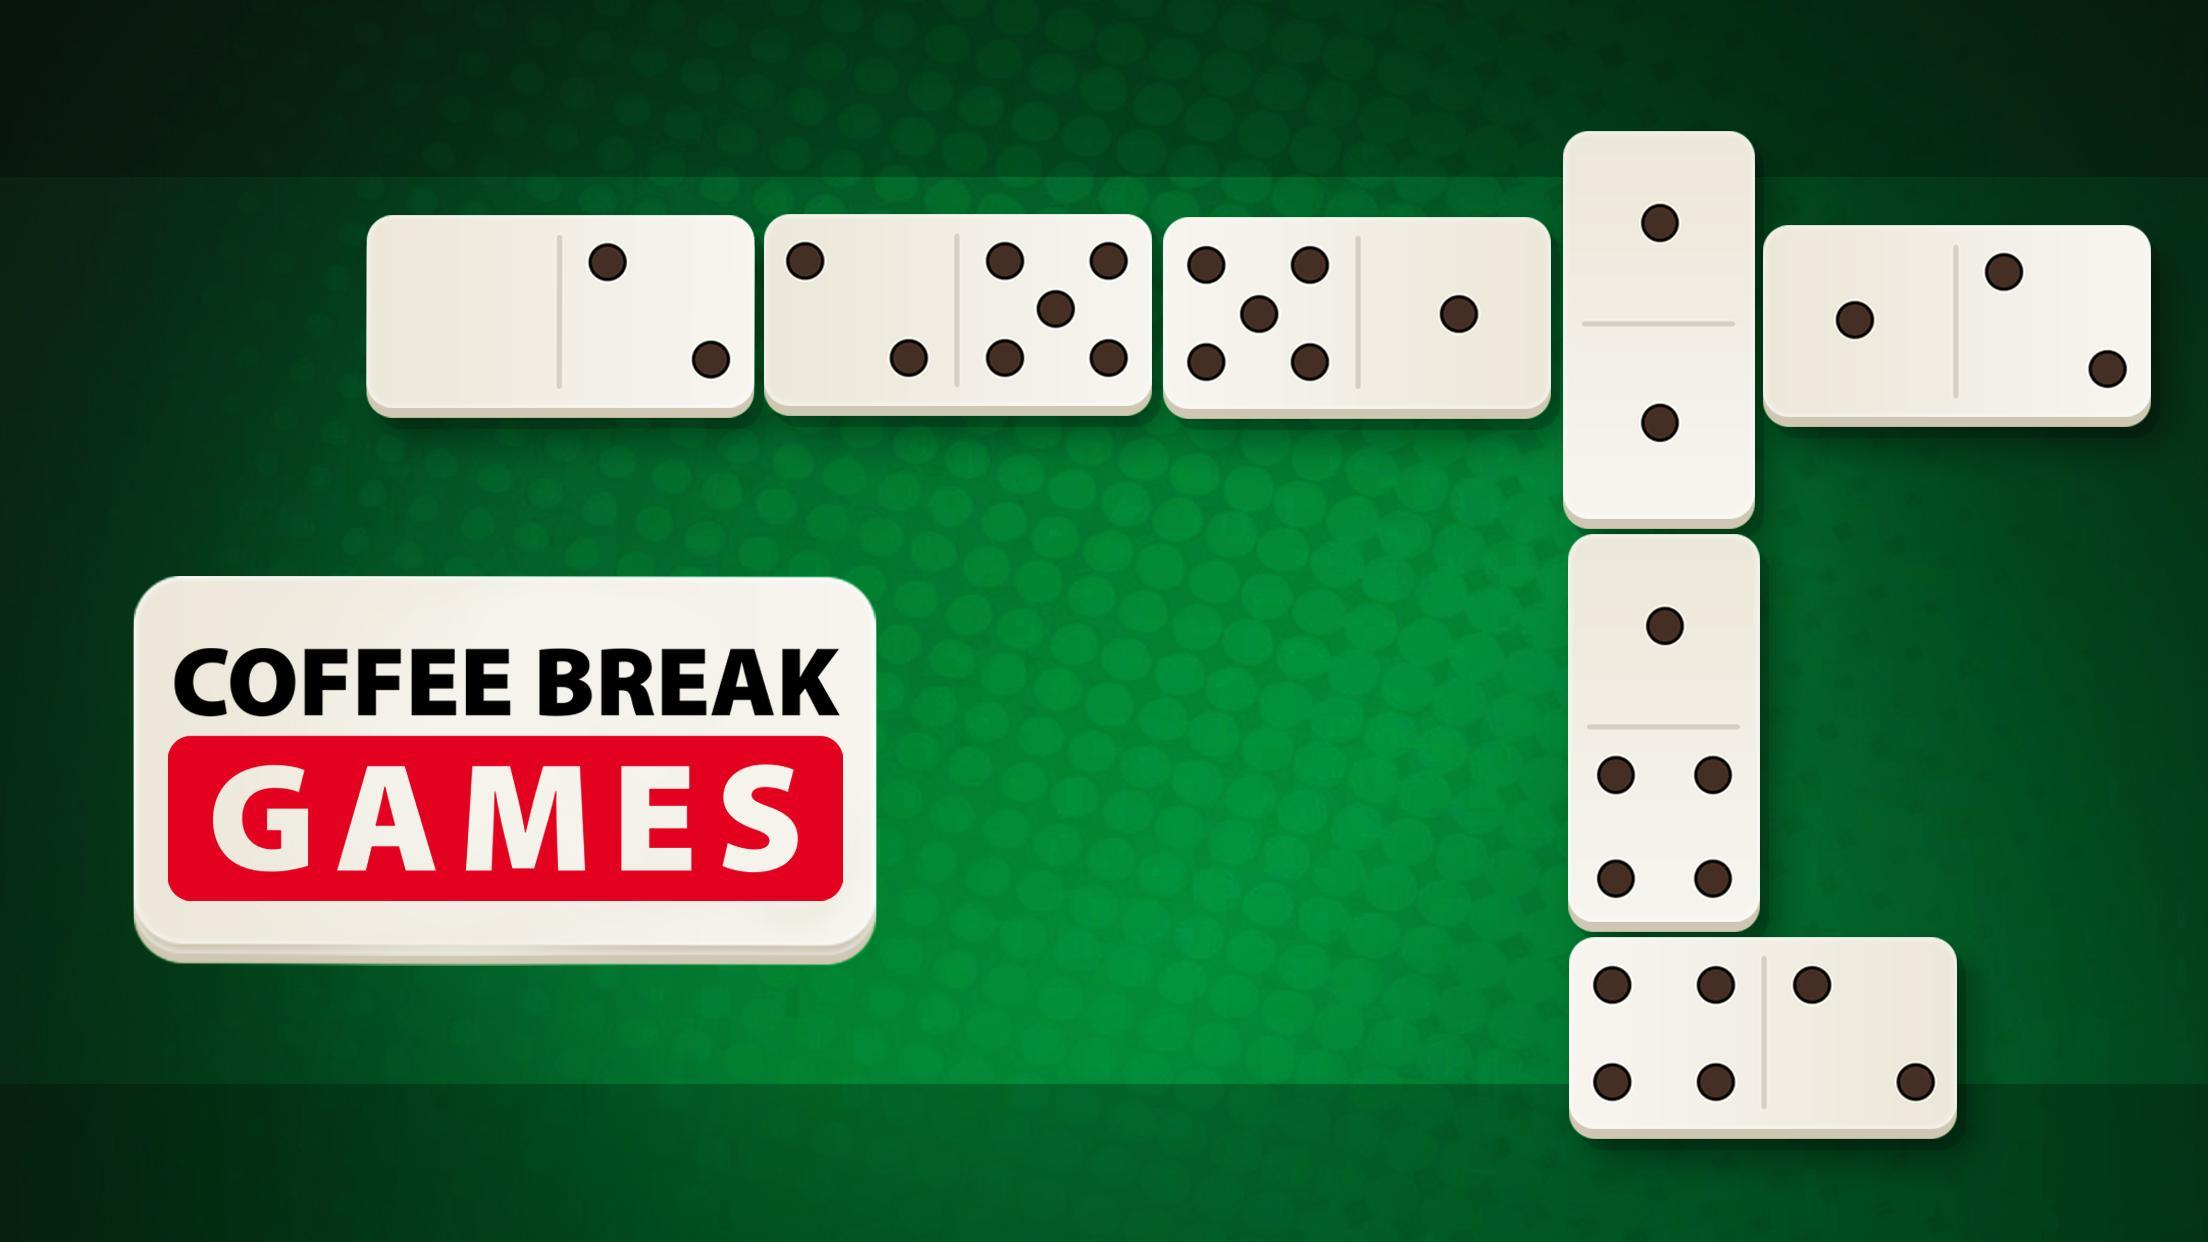 Dominos Party - Classic Domino Board Game 4.9.4 Screenshot 23